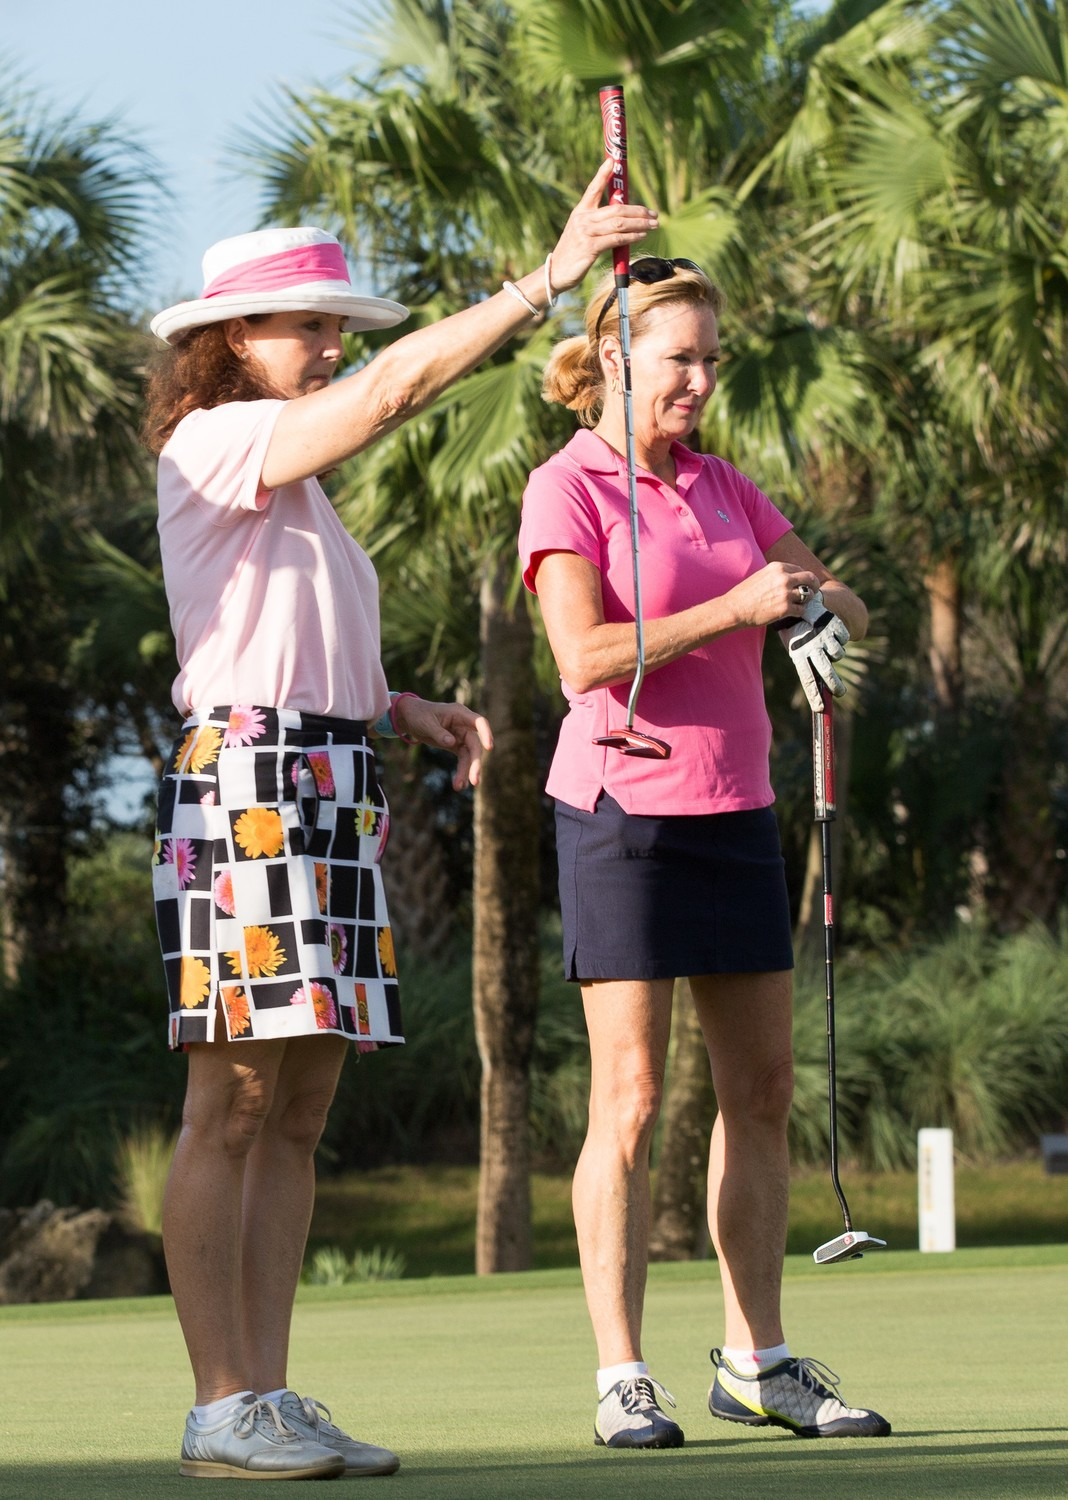 Cynthia Hastings and Carol Ditzel play in the Pink Ribbon Golf Classic.